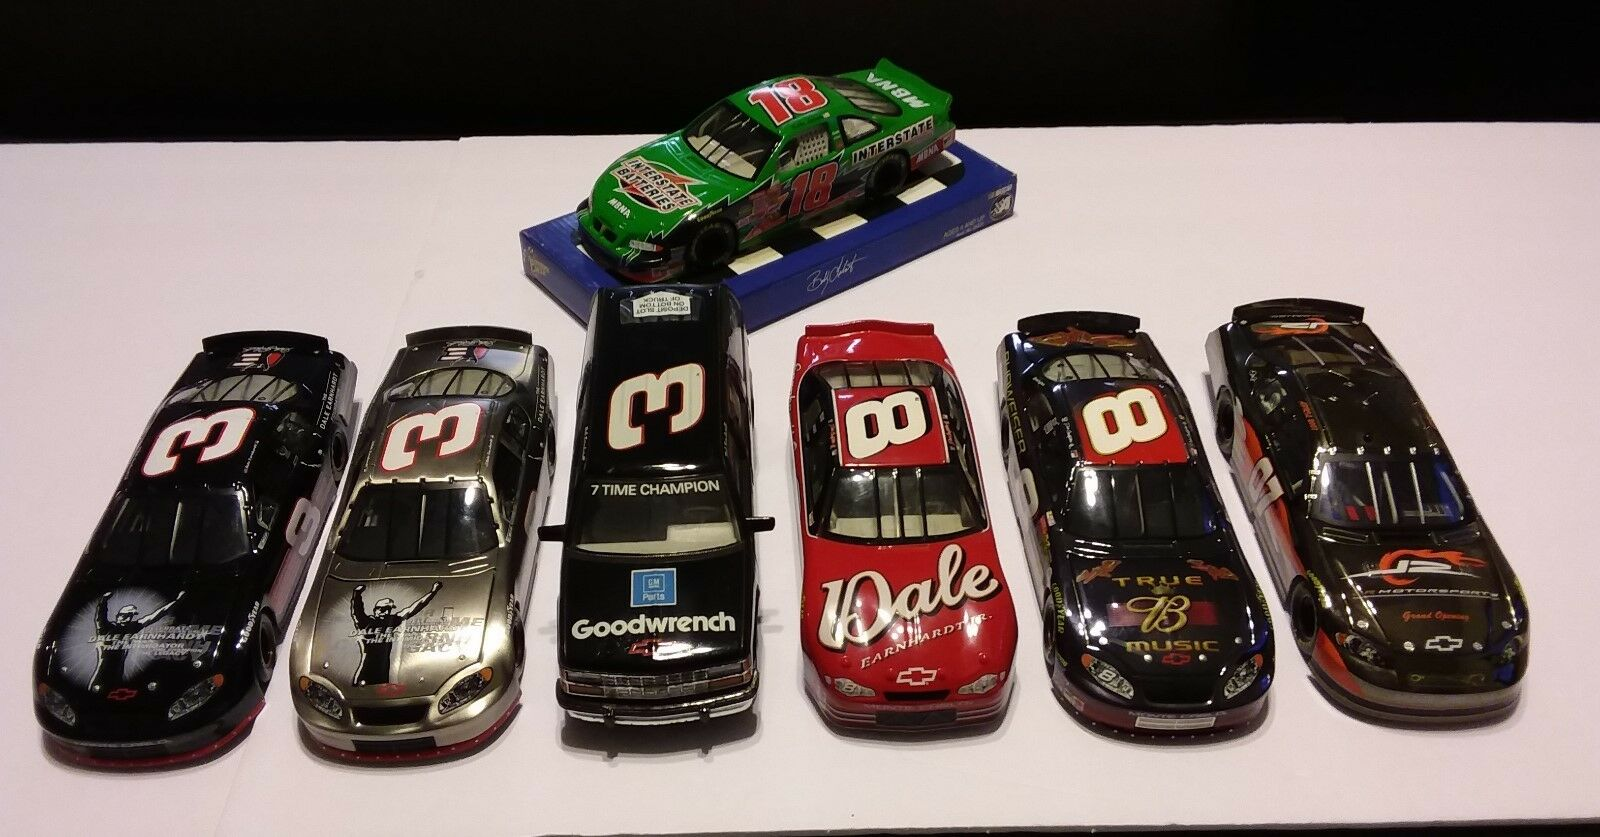 NASCAR DALE EARNHARDT COLLECTION plus BoBBy Labonte Race Car, 7 CT, Pre-owned